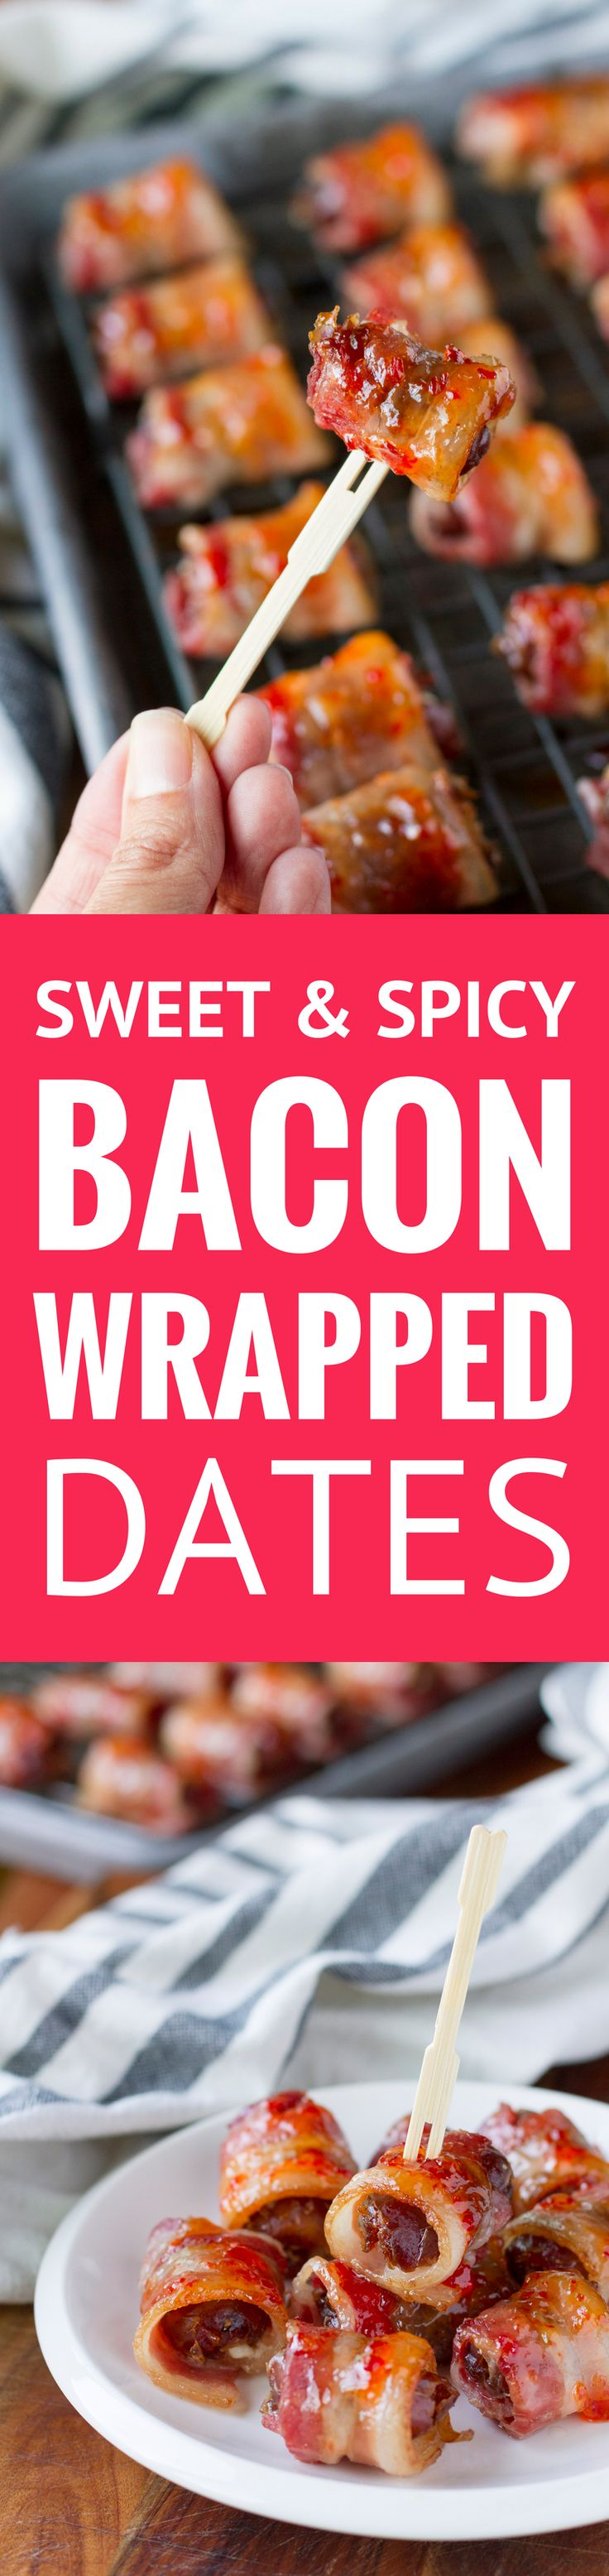 Sweet & Spicy Bacon Wrapped Dates with Goat Cheese -- This bacon wrapped dates recipe will really knock your guests' socks off! They sound fancy, look fancy, even taste fancy, but they're seriously easy to make... Perfect for both upscale and low-key gatherings! | easy bacon wrapped dates | bacon wrapped dates stuffed | bacon wrapped dates with glaze | find the recipe on unsophisticook.com #christmas #christmasrecipes #appetizers #baconrecipes